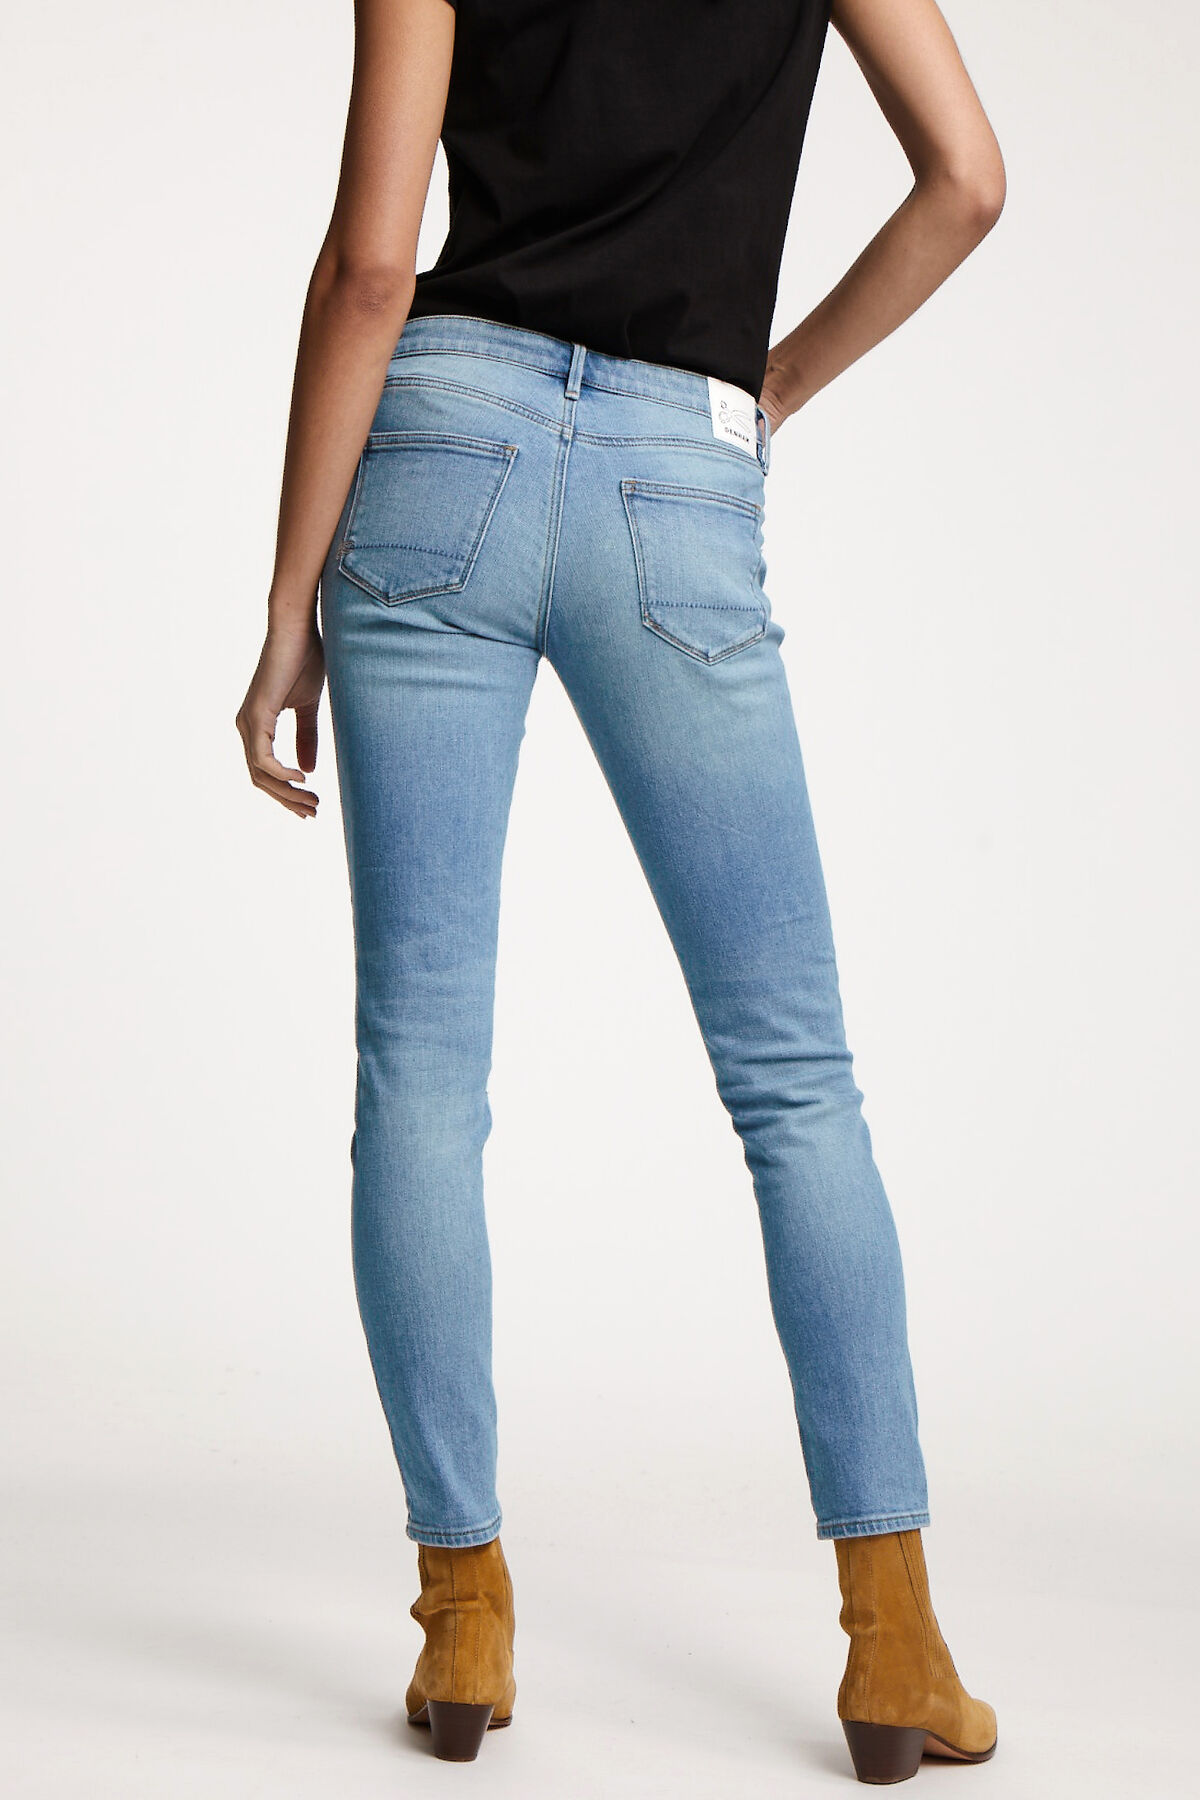 SHARP Pastel Blue, Lightly Faded Denim - MID-RISE, SKINNY FIT